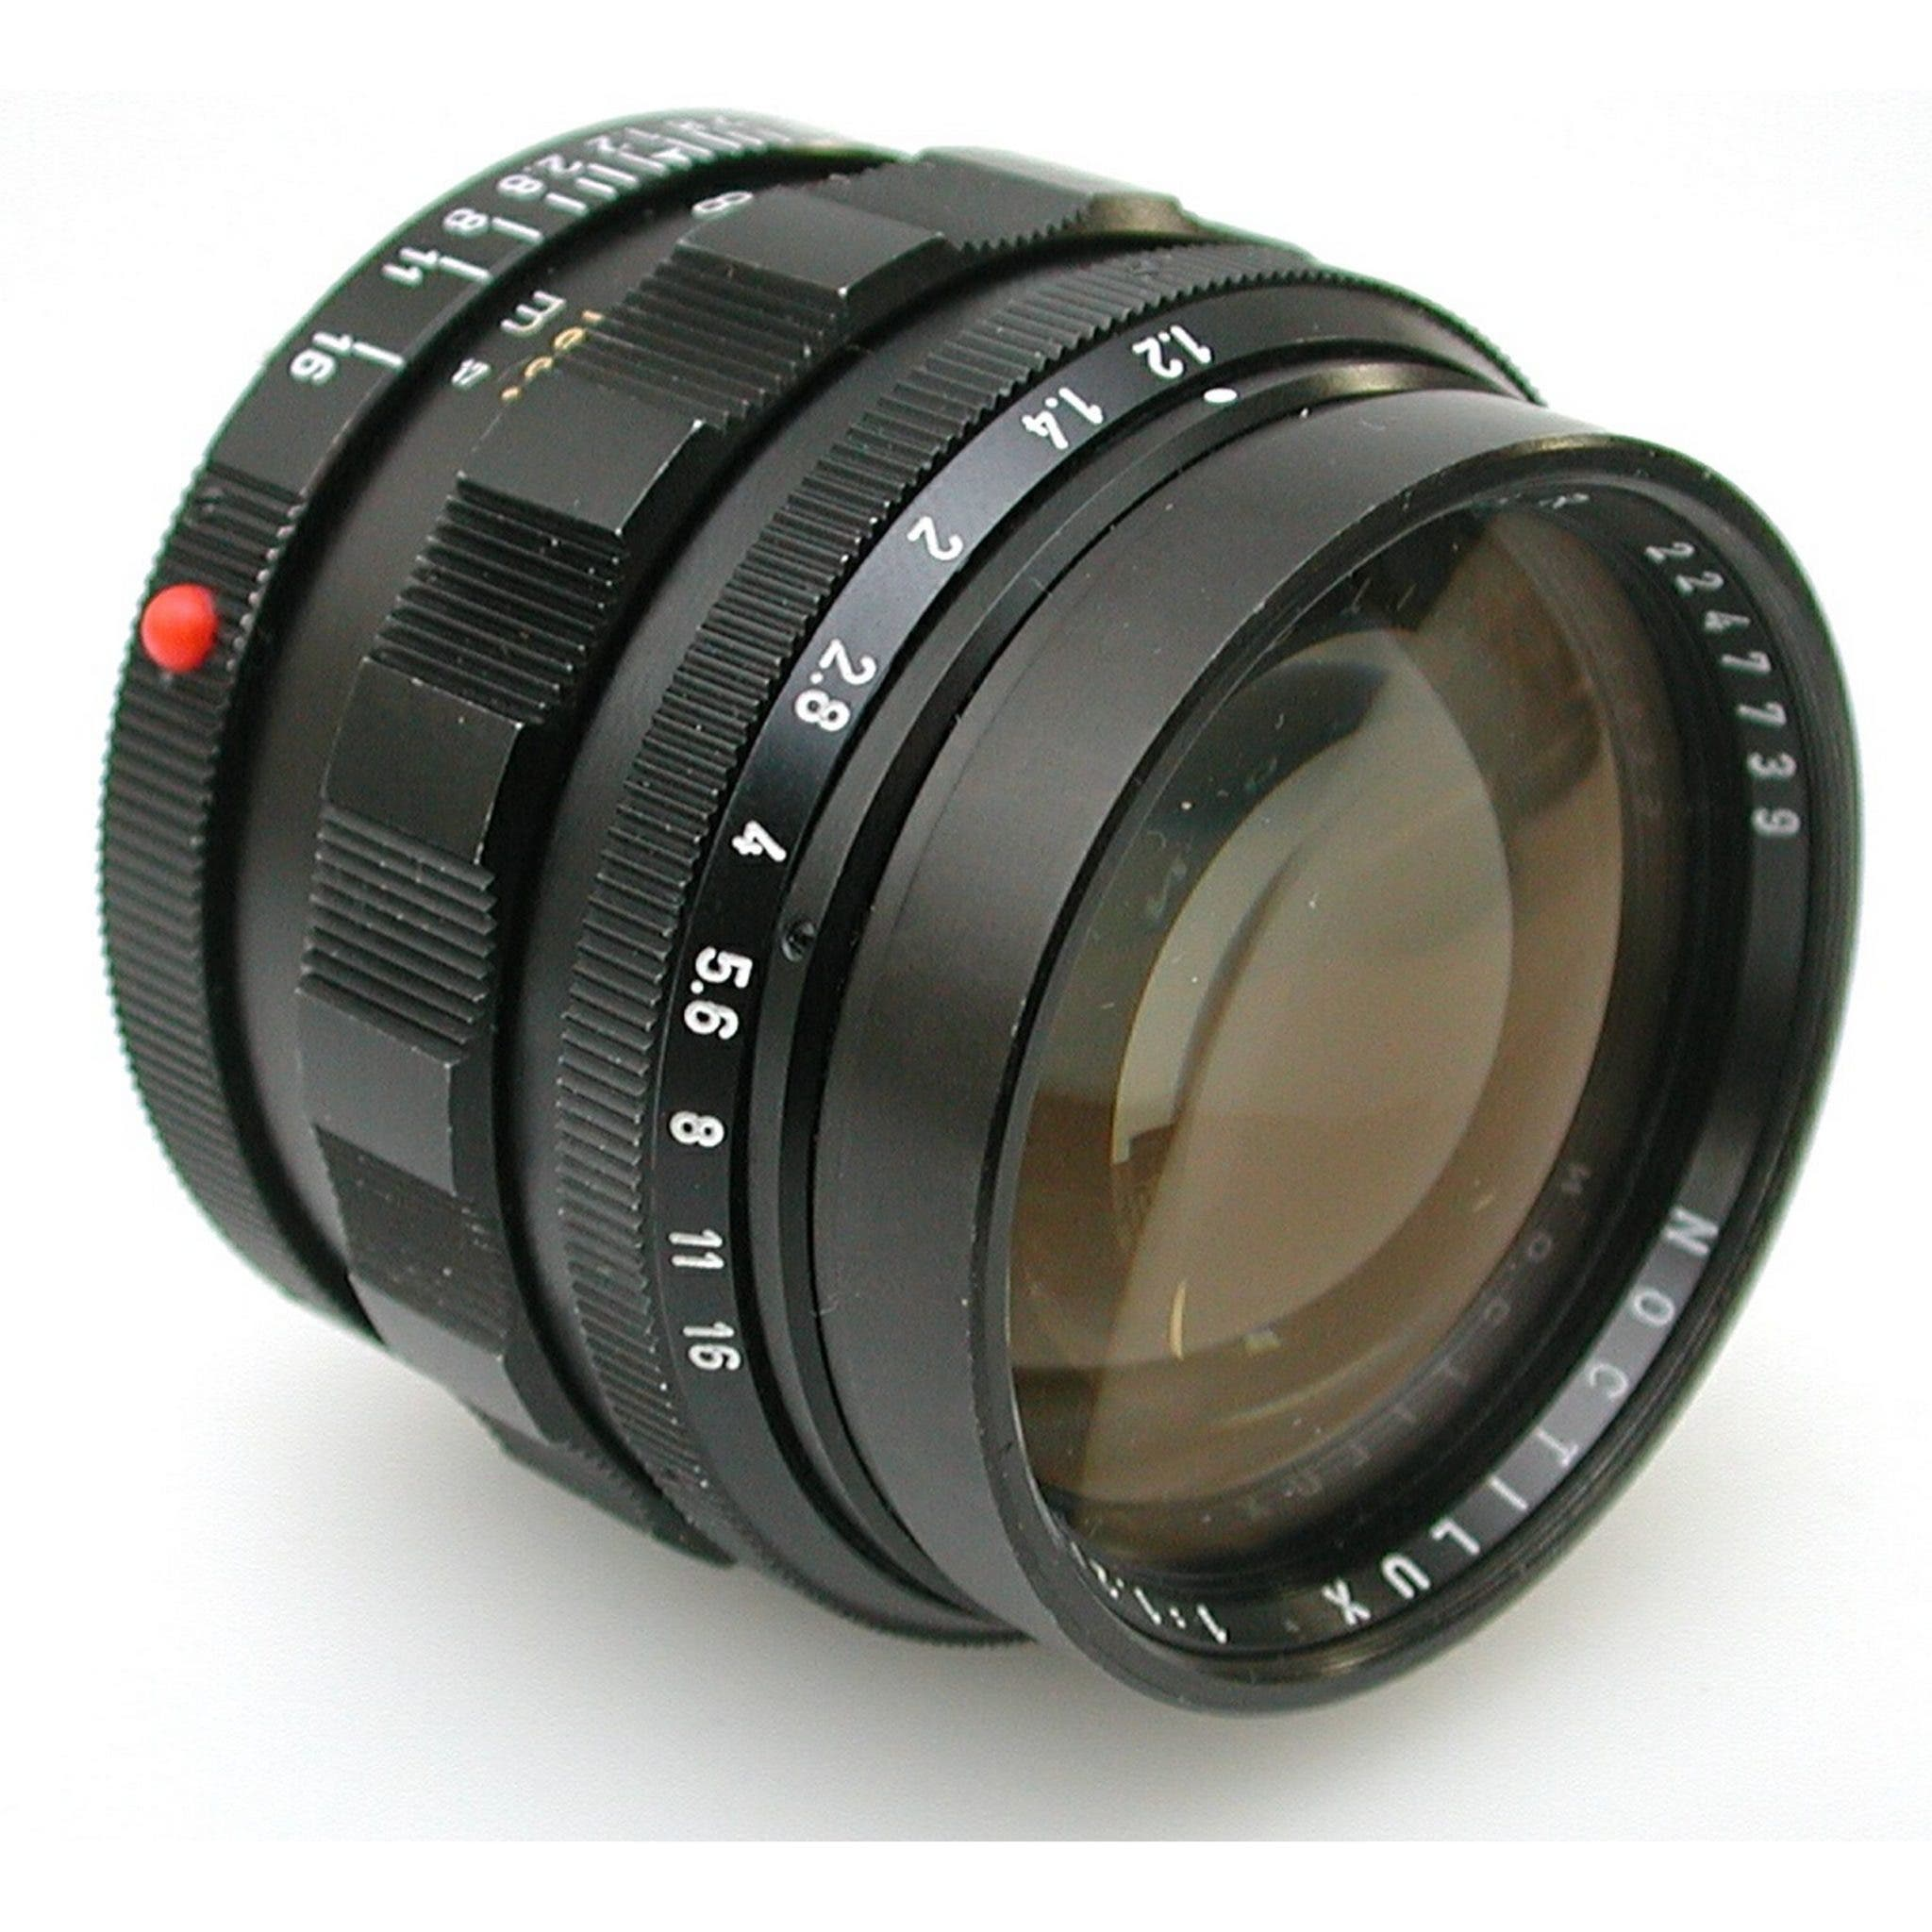 Guess How Much This Leitz 50mm f1.2 Noctilux Lens Sold For